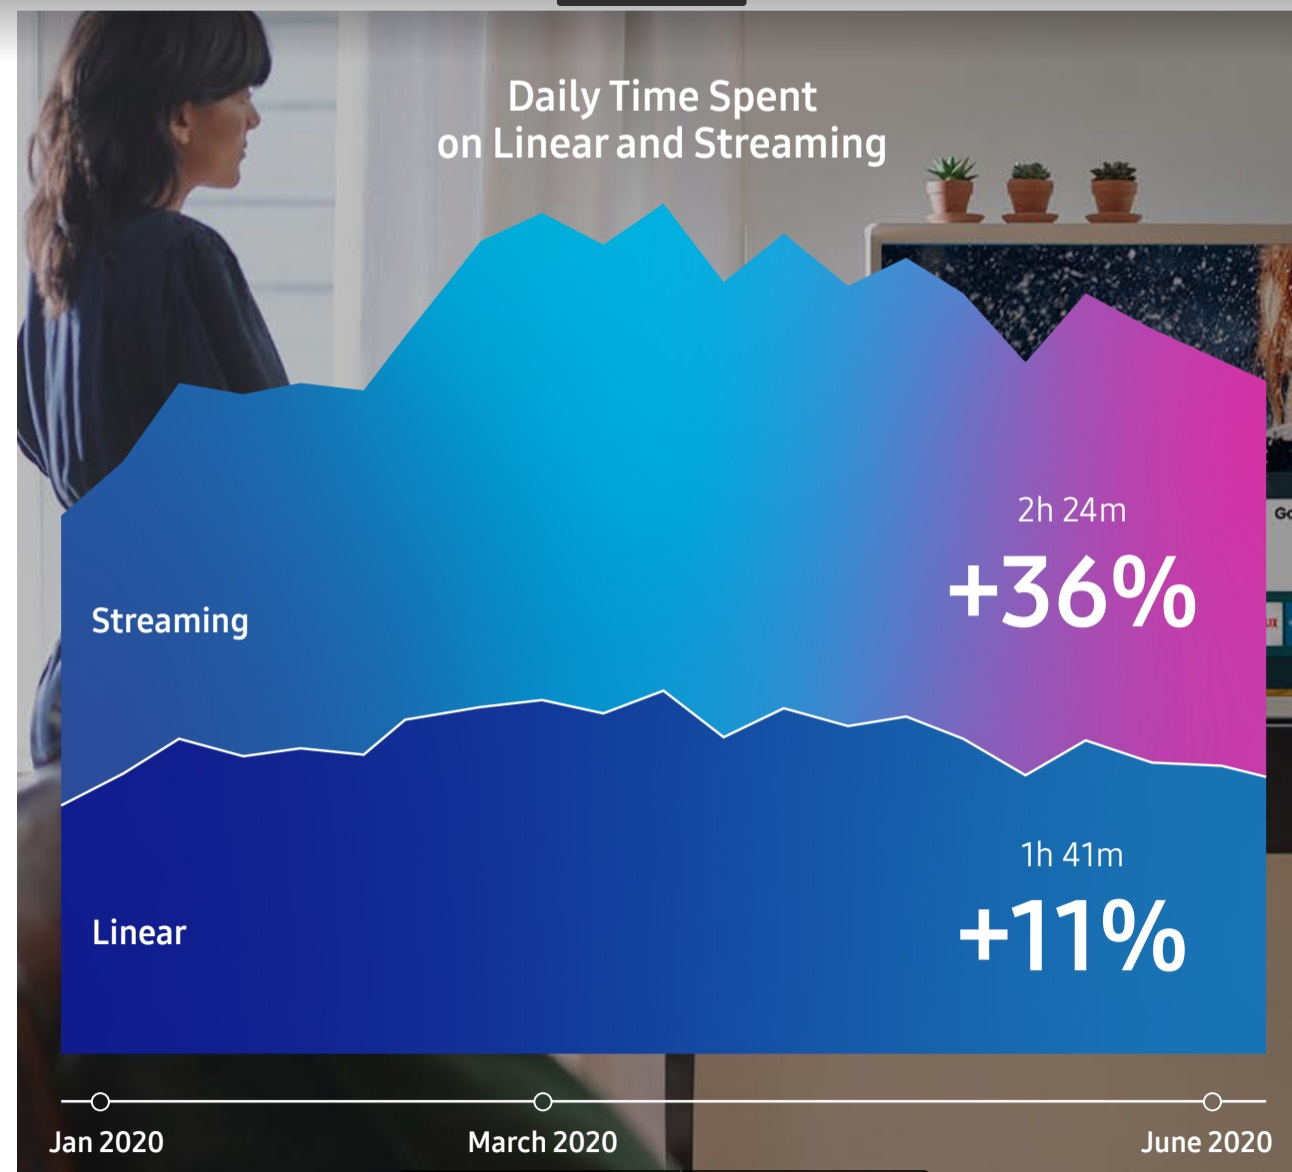 Streaming overtakes linear TV viewing for first time - Samsung report